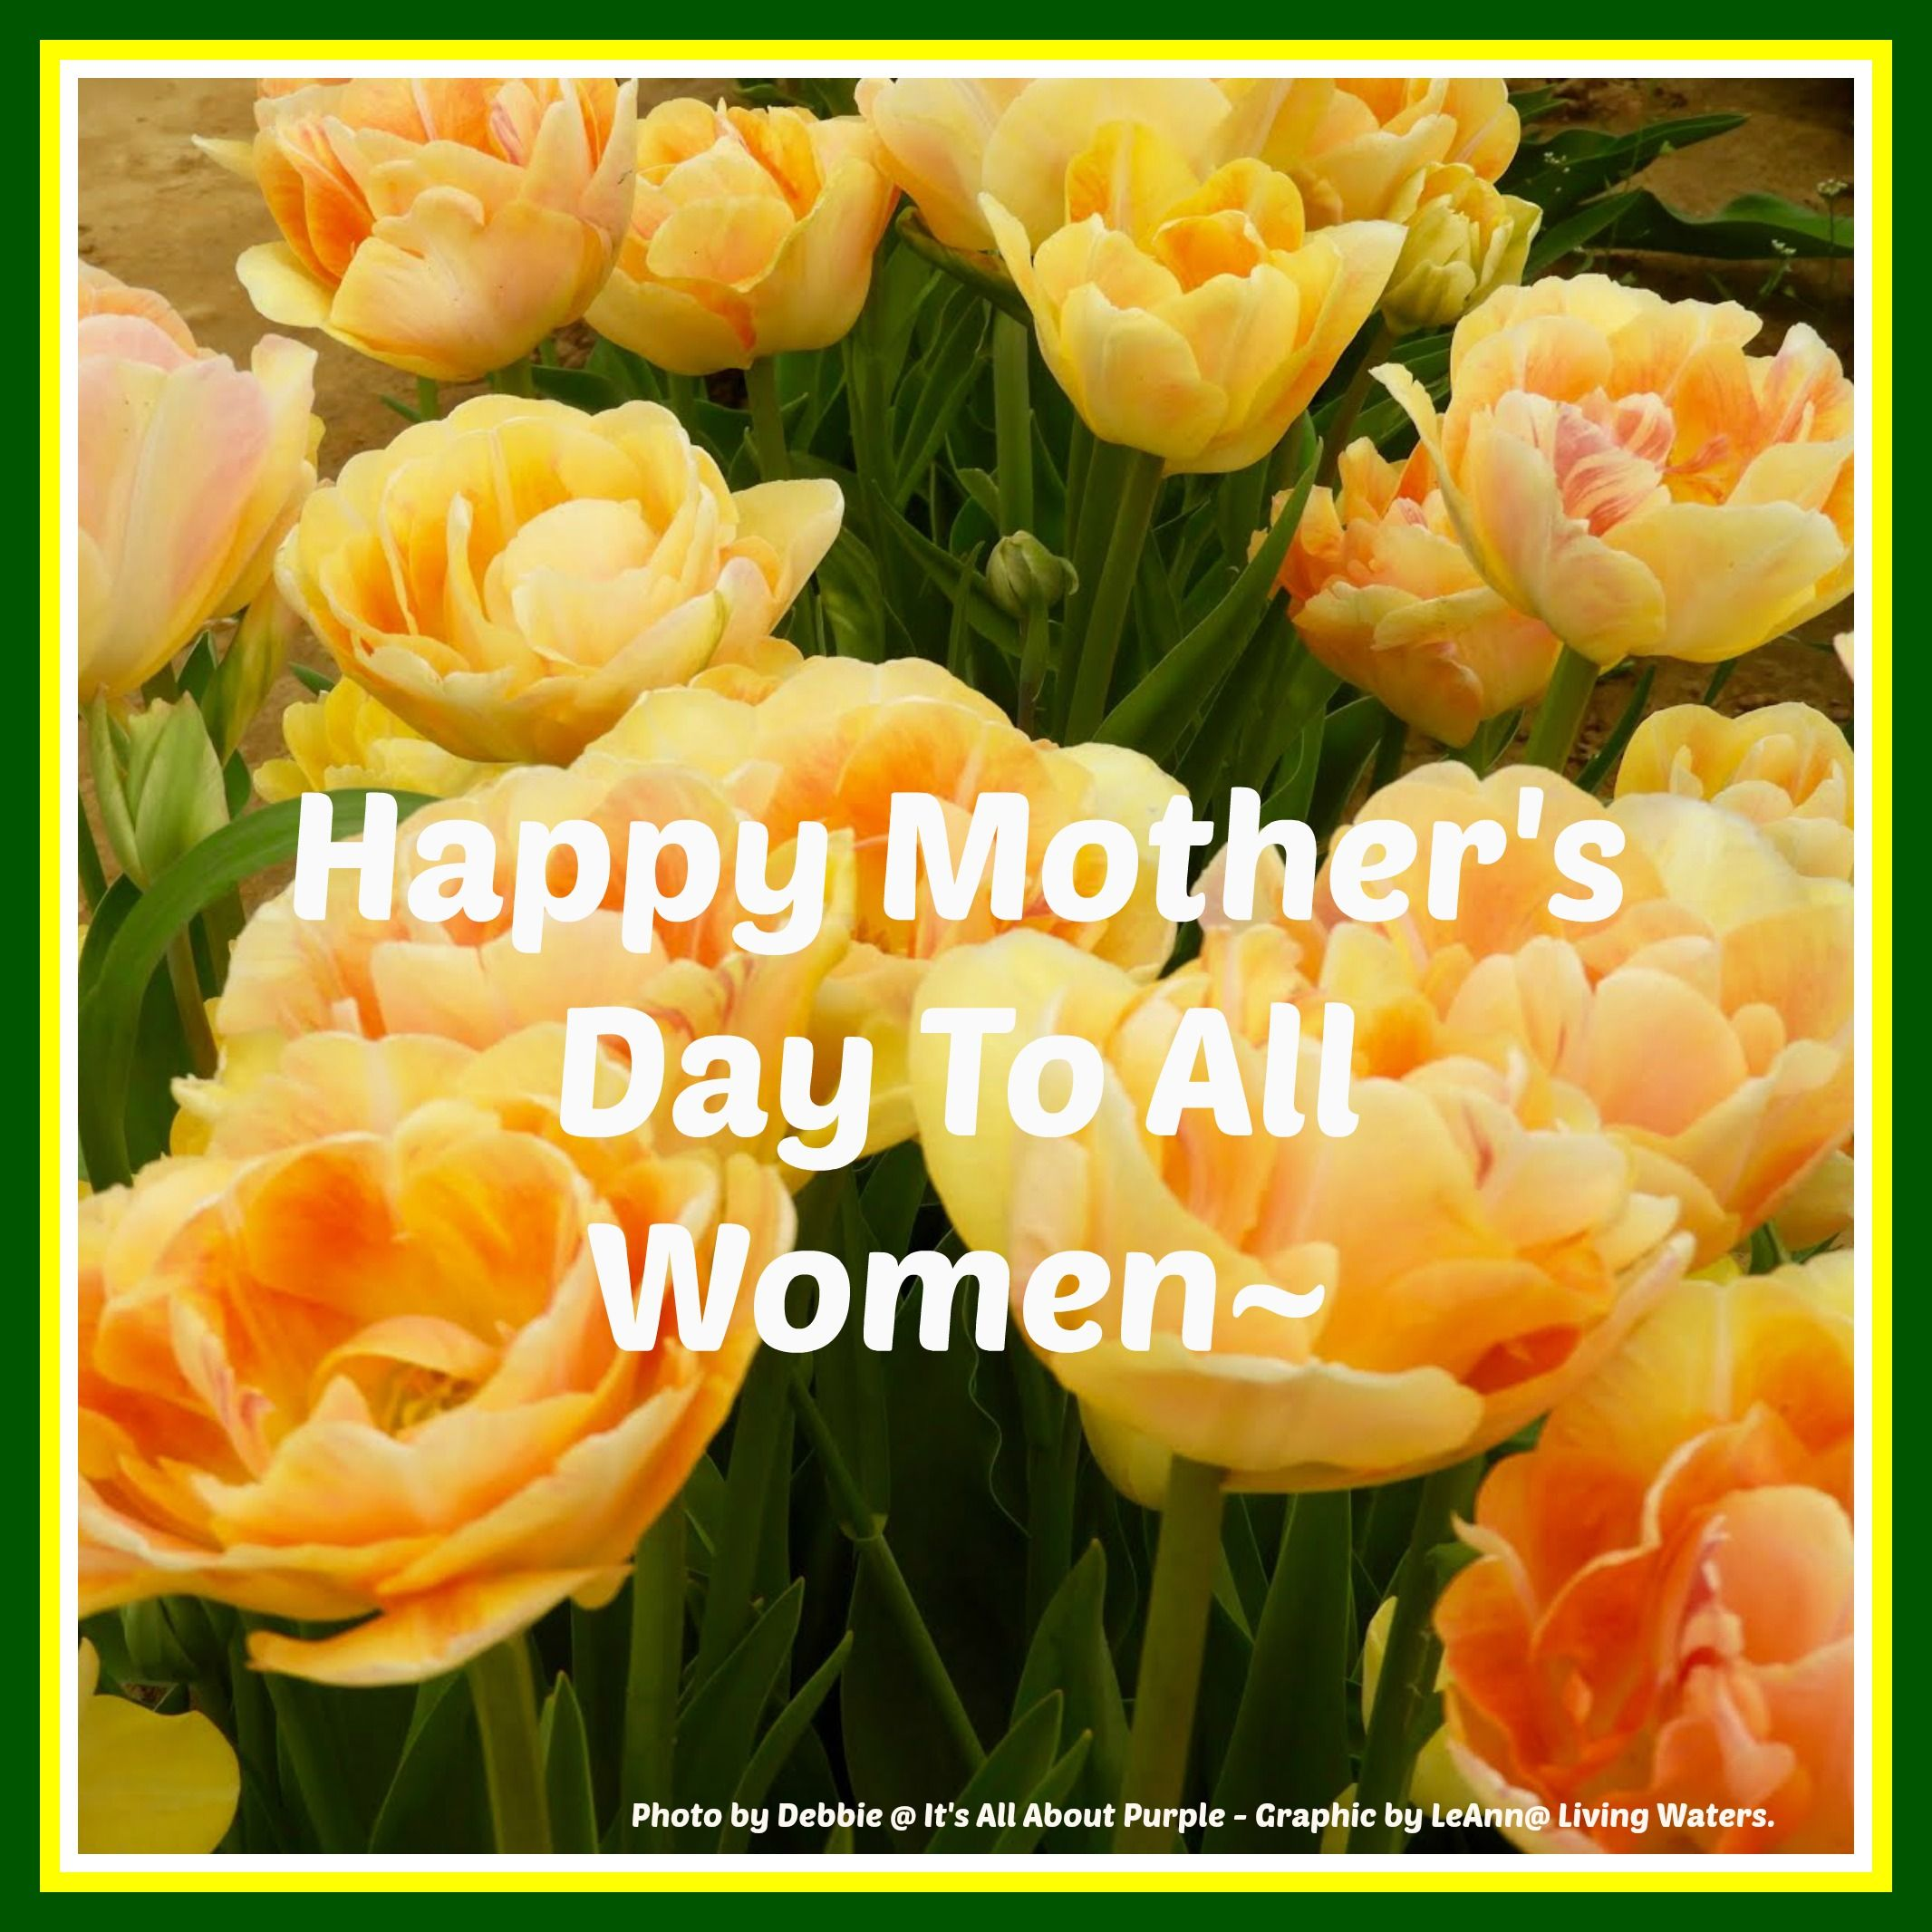 Happy Mother's Day thoughts for all you marvelous mothers ...